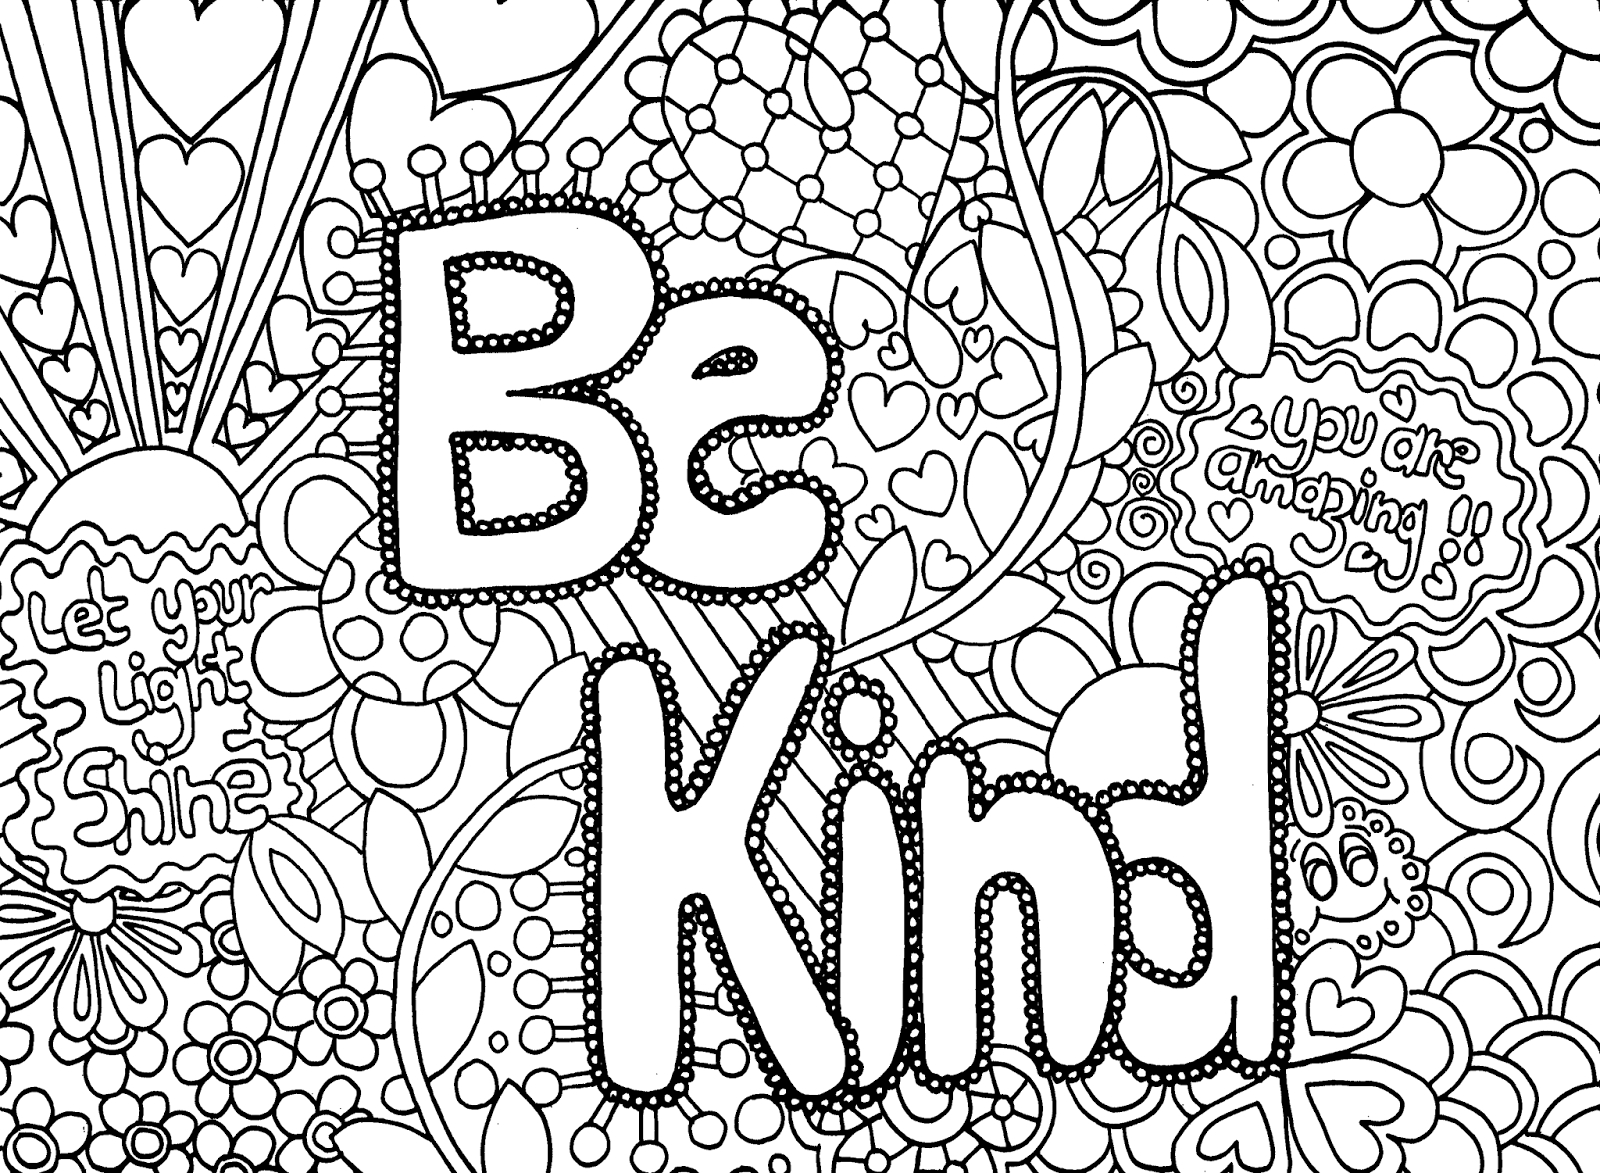 Free printable coloring pages with words - Coloring Pages For Teenagers To Print Then Marvelous Coloring Pages For Teenagers To Print Florida